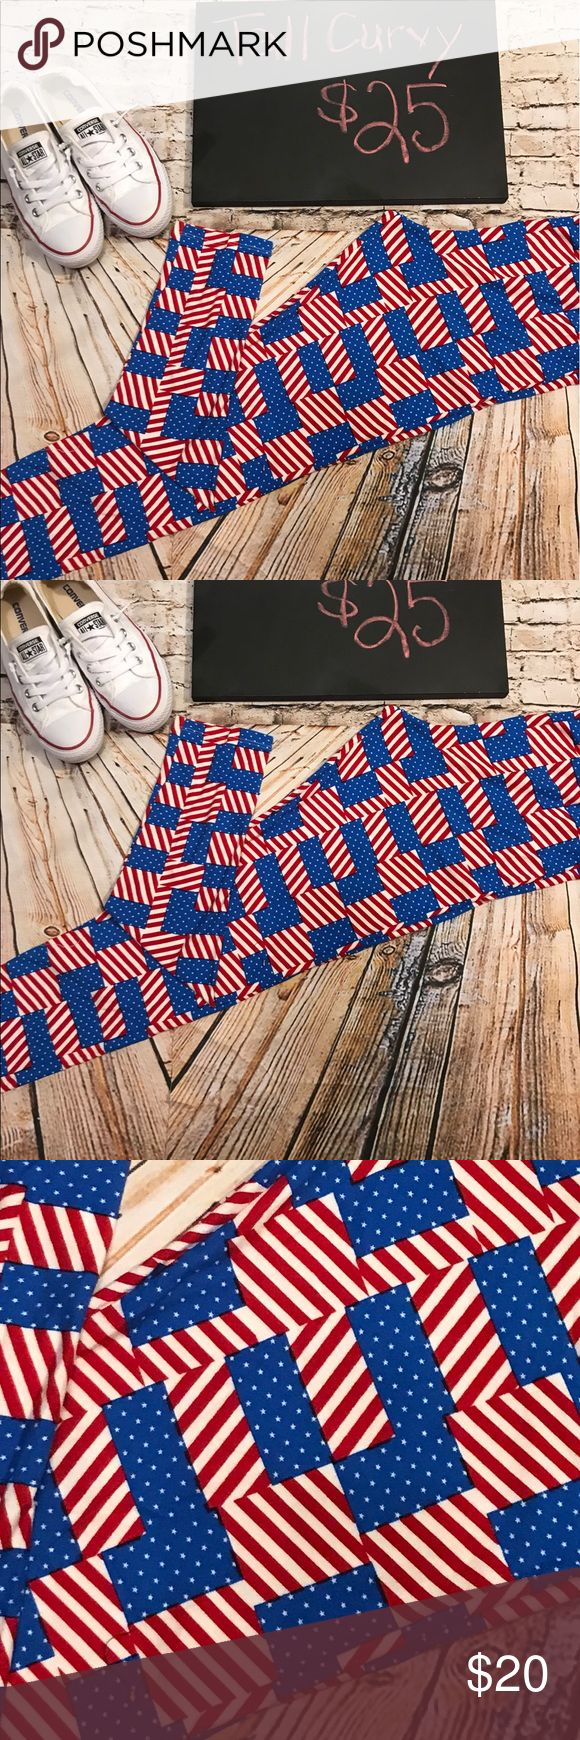 LuLaRoe Americana Tall Curvy Leggings NWT LuLaRoe Americana Tall Curvy Leggings. NWT American Flag price is firm LuLaRoe Pants Leggings